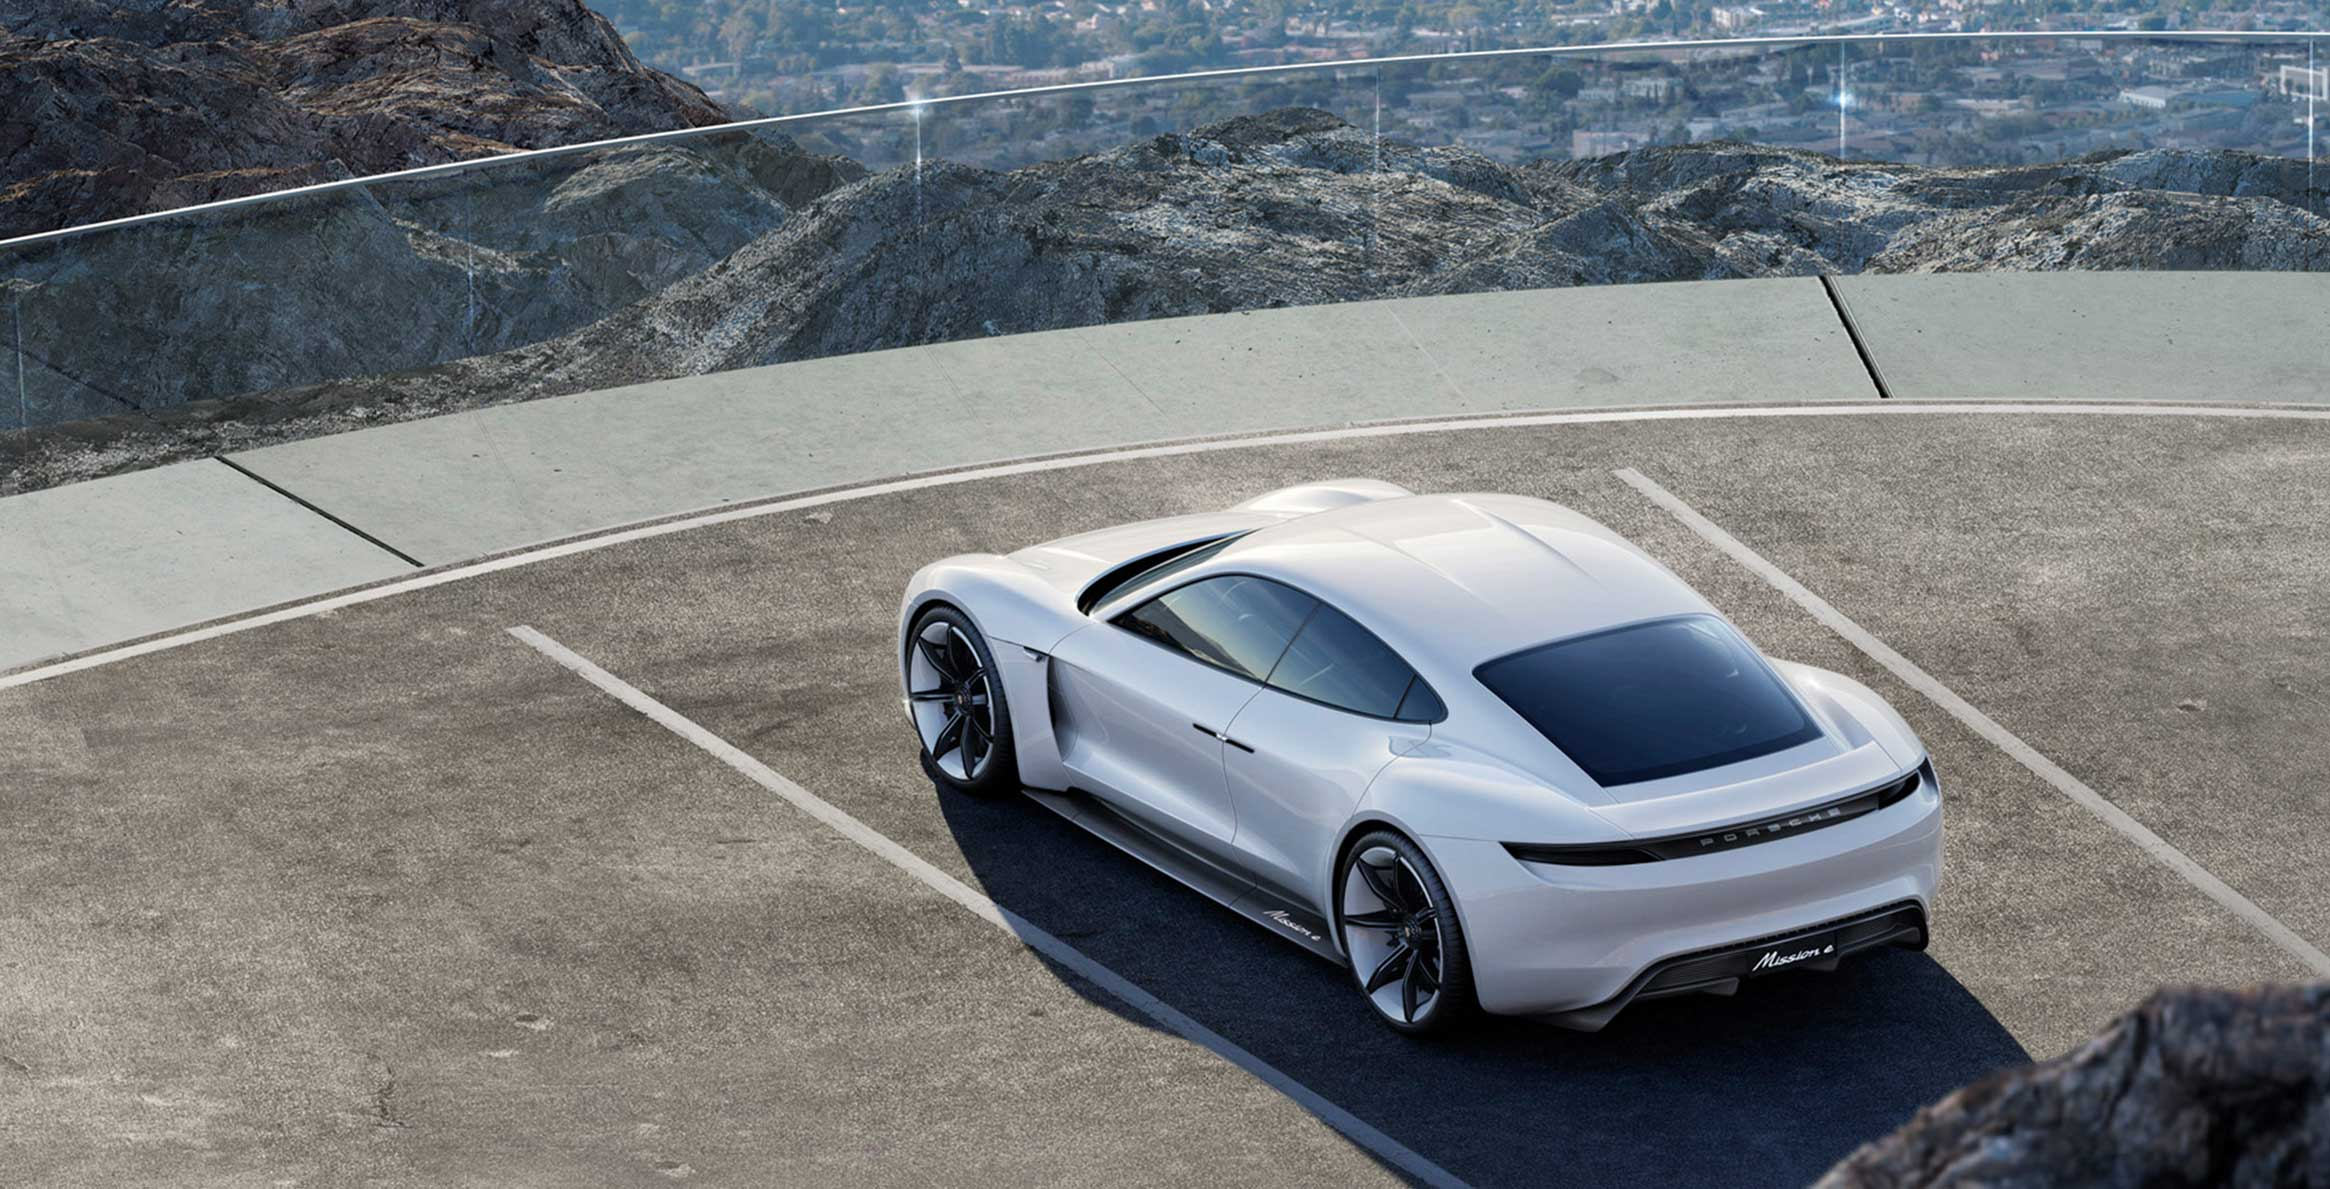 Porsche reveals pricing for its electric sports car the Taycan